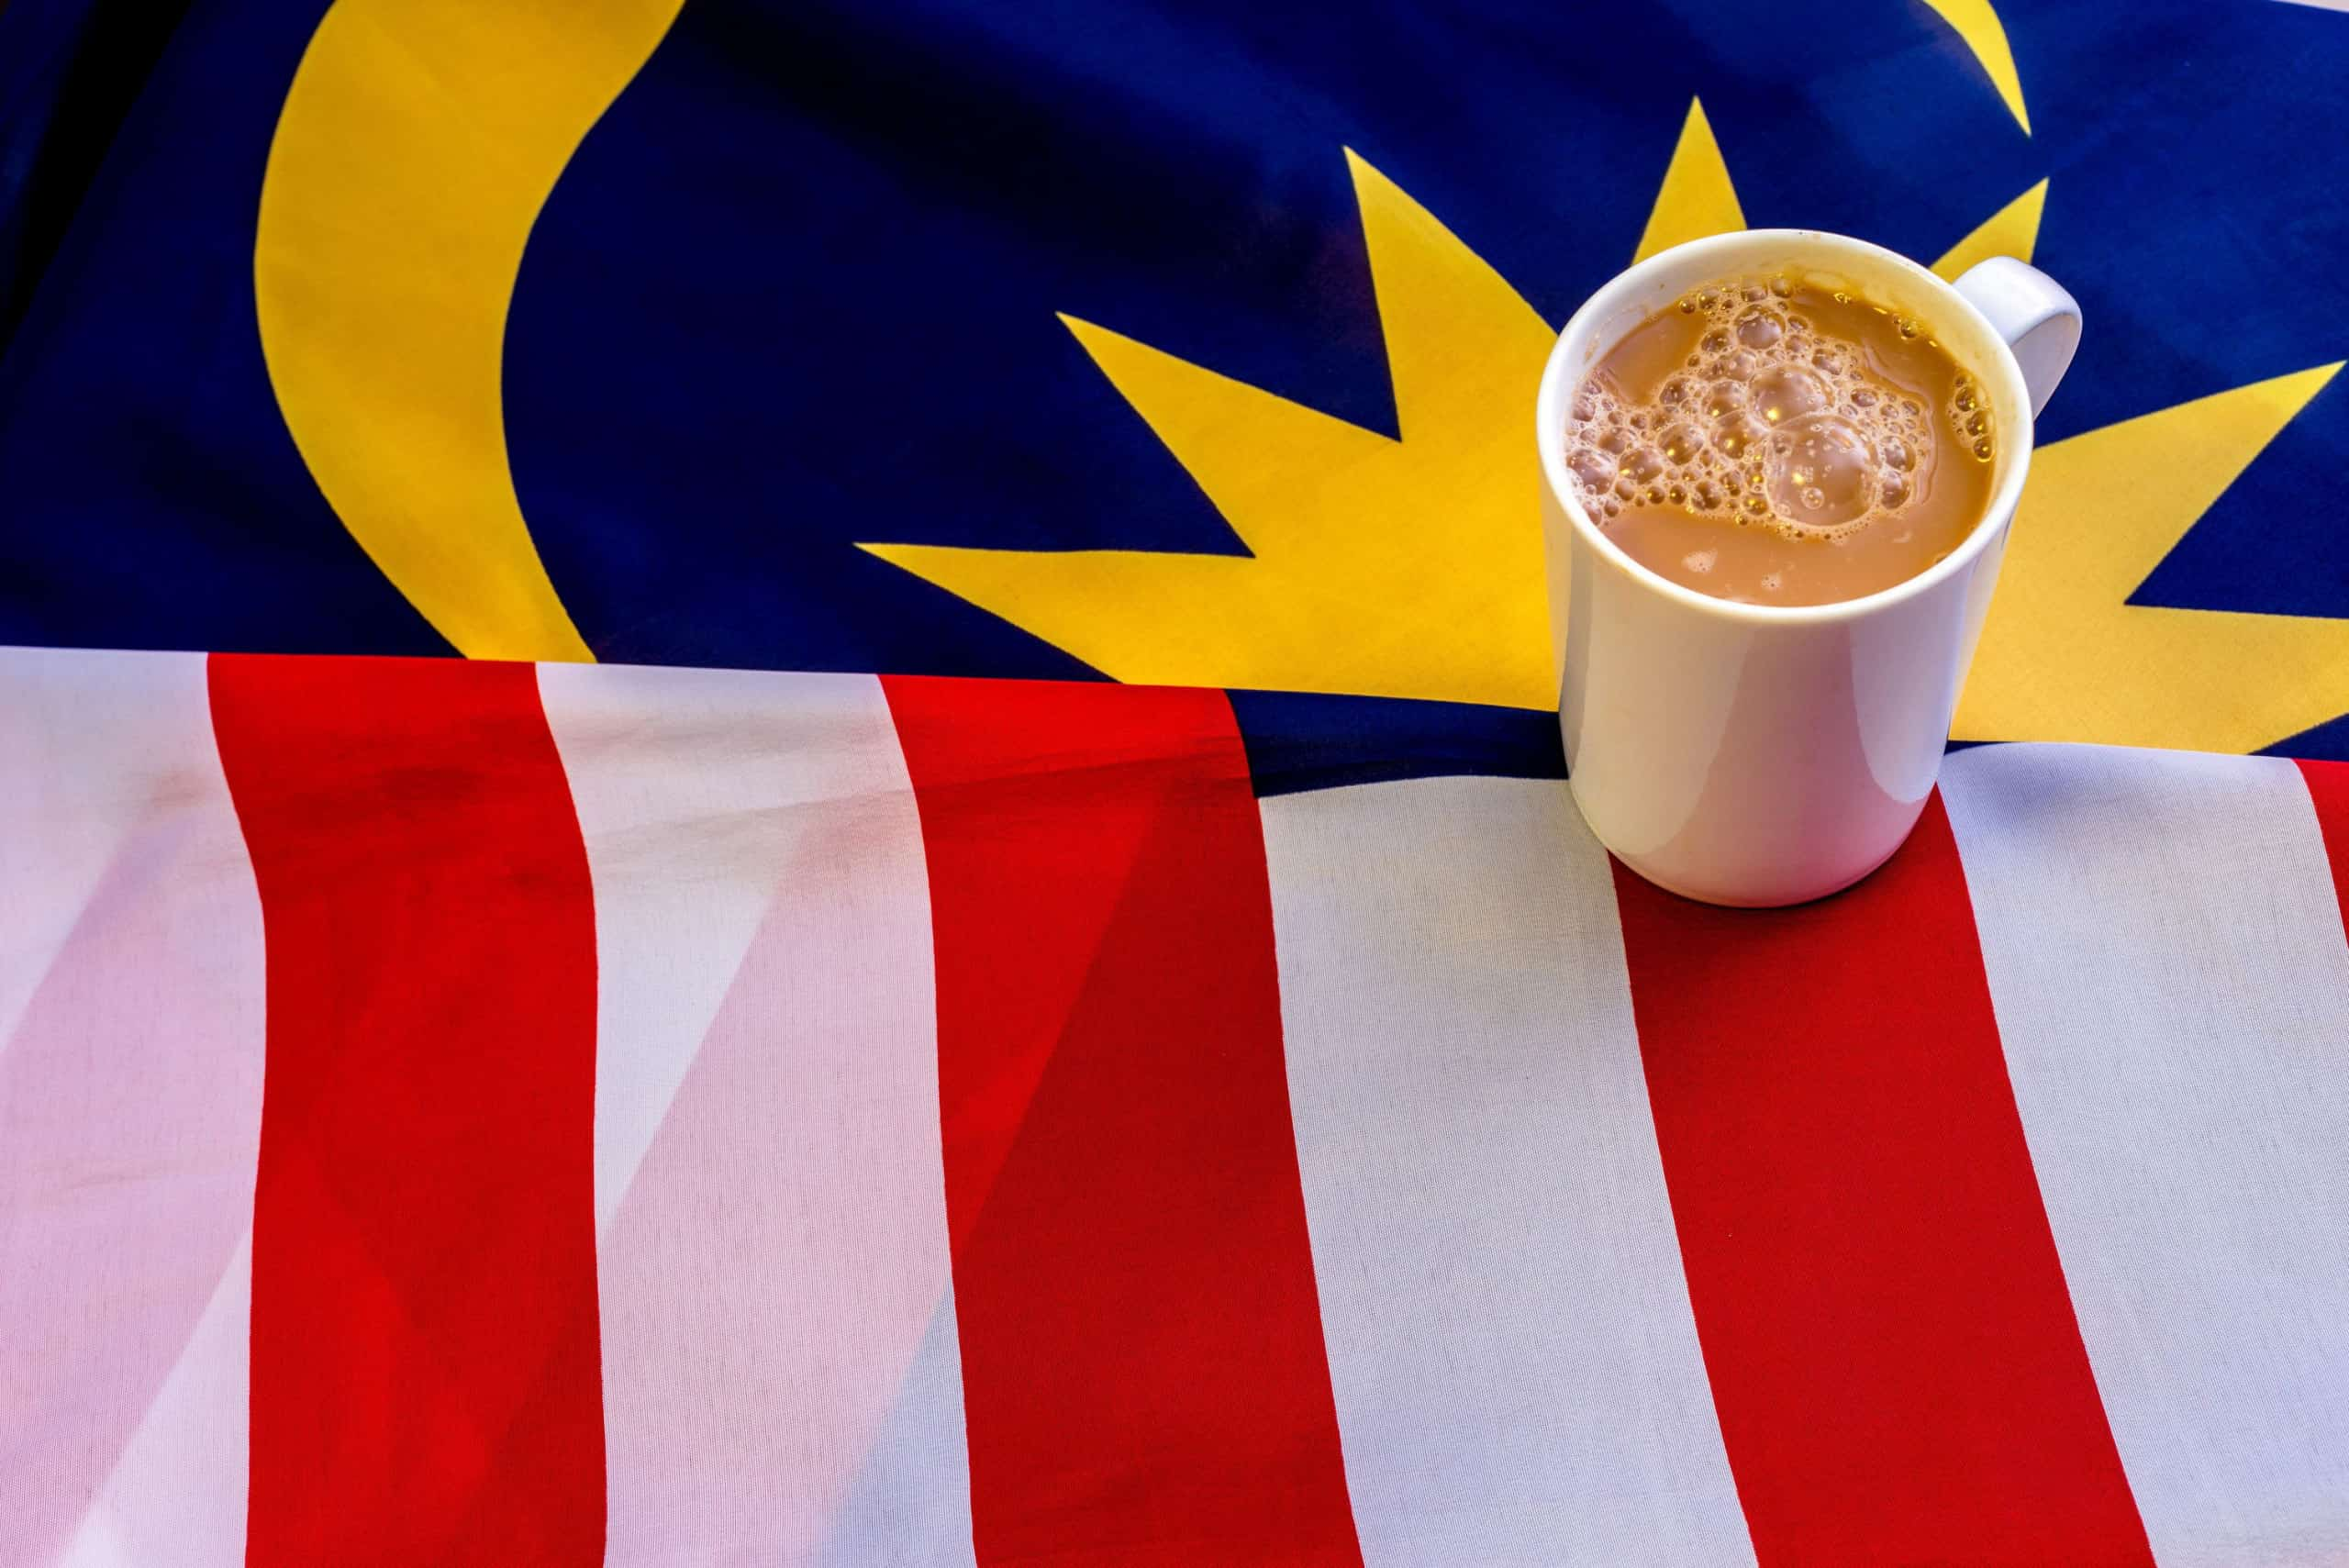 Malaysian Breakfast - Teh Tarik on Malaysia Flag. Teh Tarik is unofficially the national breakfast drink of Malaysia. It is a tea with milk